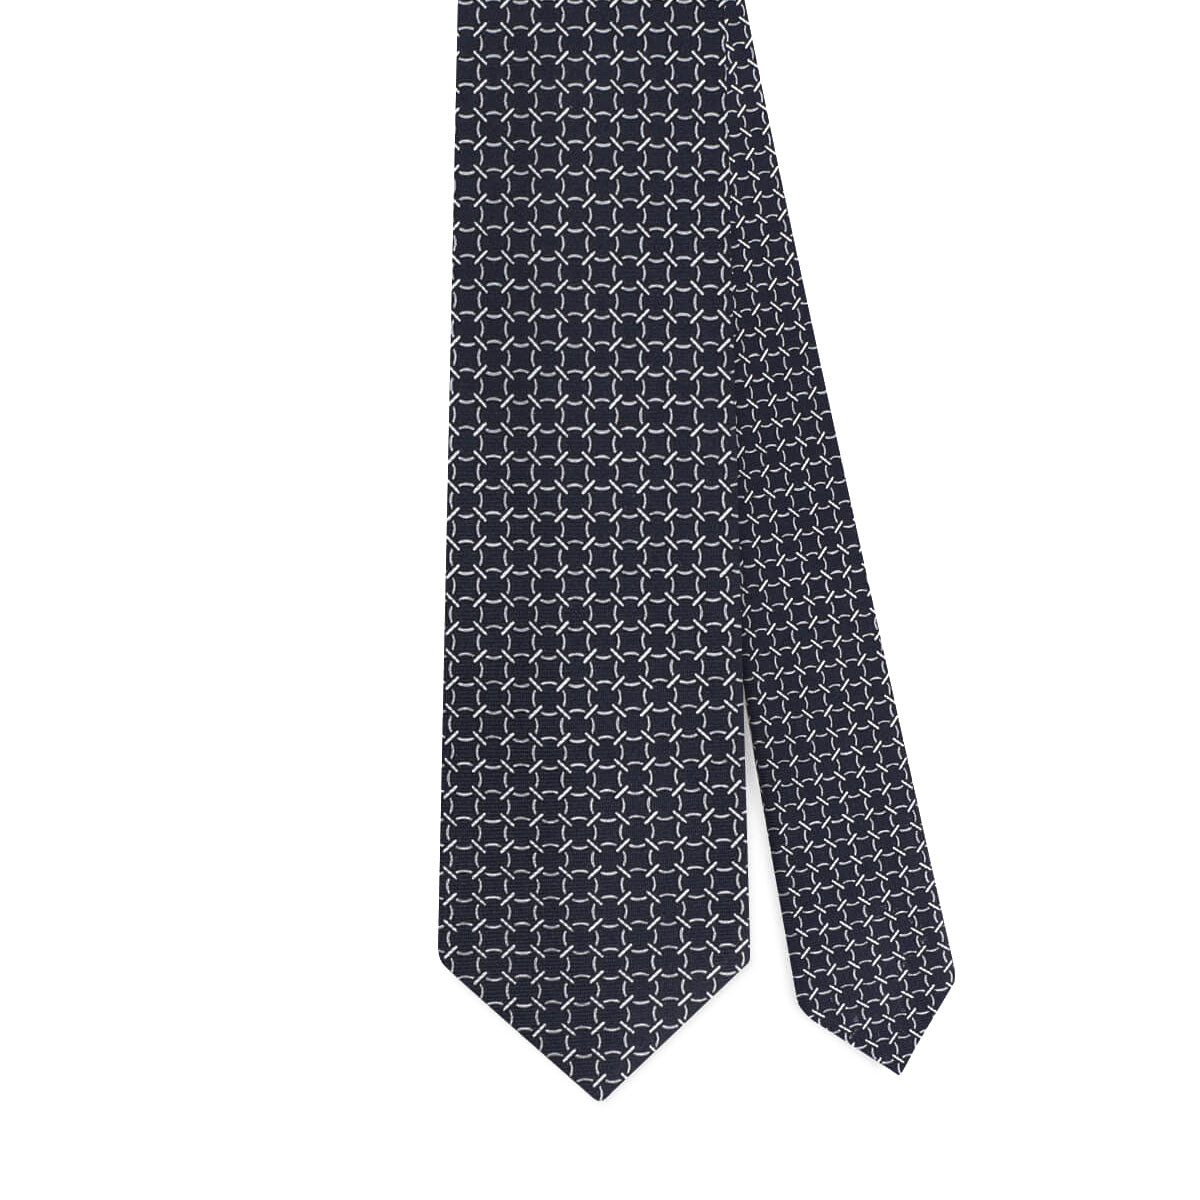 CHAIN PATTERN 6-FOLD SELFTIPPED SILK TIE – NAVY MIX